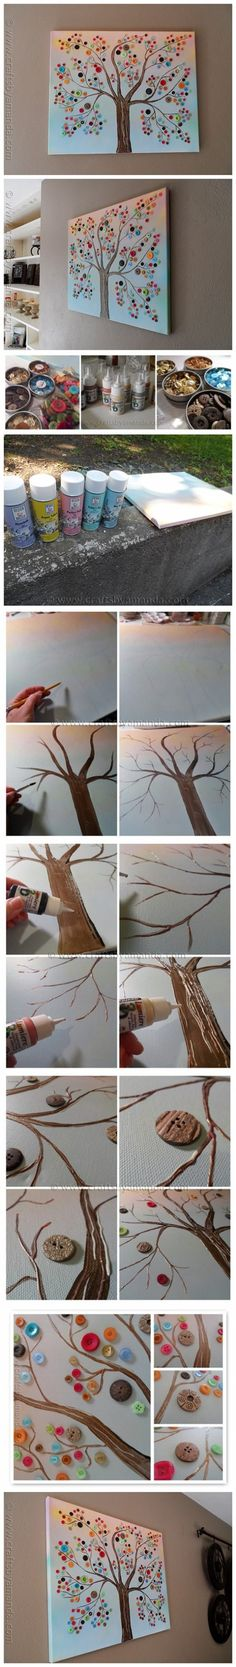 How to make vibrant DIY button tree canvas wall art step by step tutorial instructions 512x3618 How to make vibrant DIY button tree canvas w...